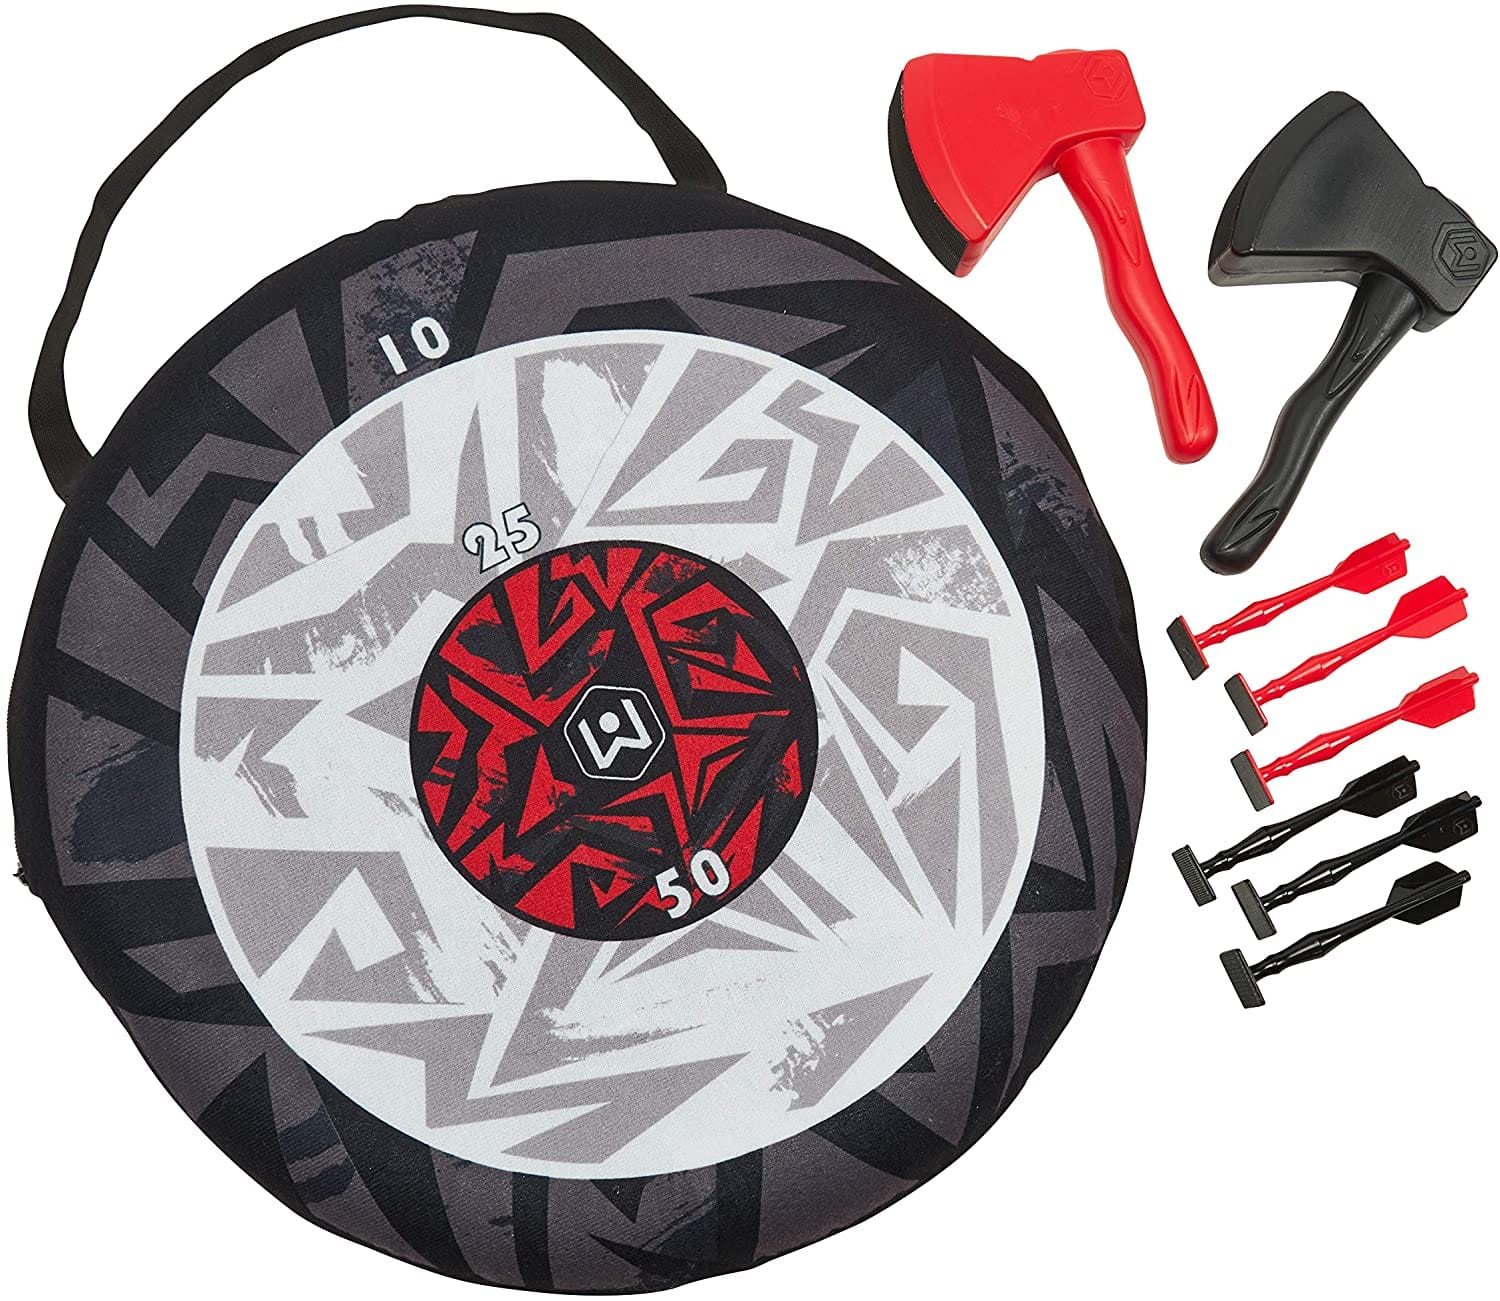 9-Piece Wicked Big Sports Portable Axe Toss and Darts 2-in-1 Game Set $18.63 + Free Shipping w/ Prime or on $25+